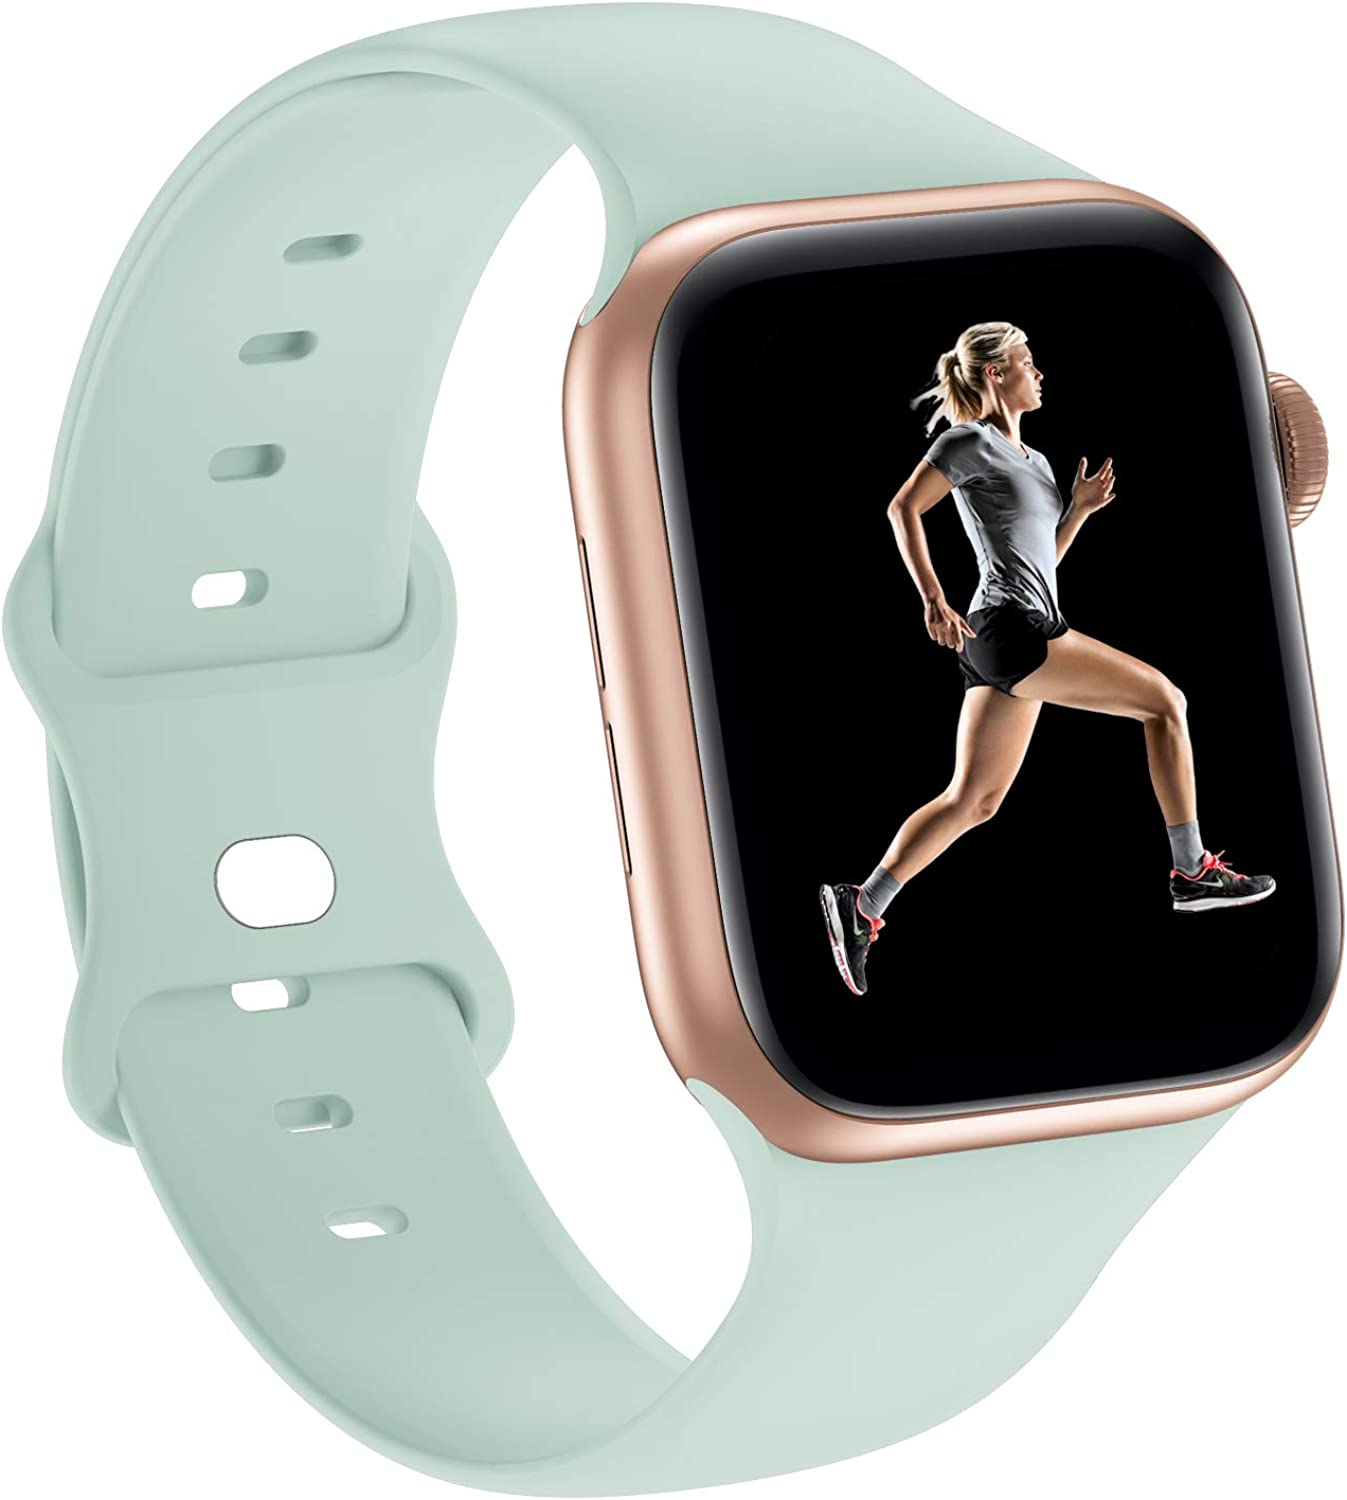 Sport Bands Silicone Compatible with Apple Watch Band 38mm 40mm 42mm 44mm,Replacement Strap Wristband for iWatch Series 6/5/4/3/2/1 SE